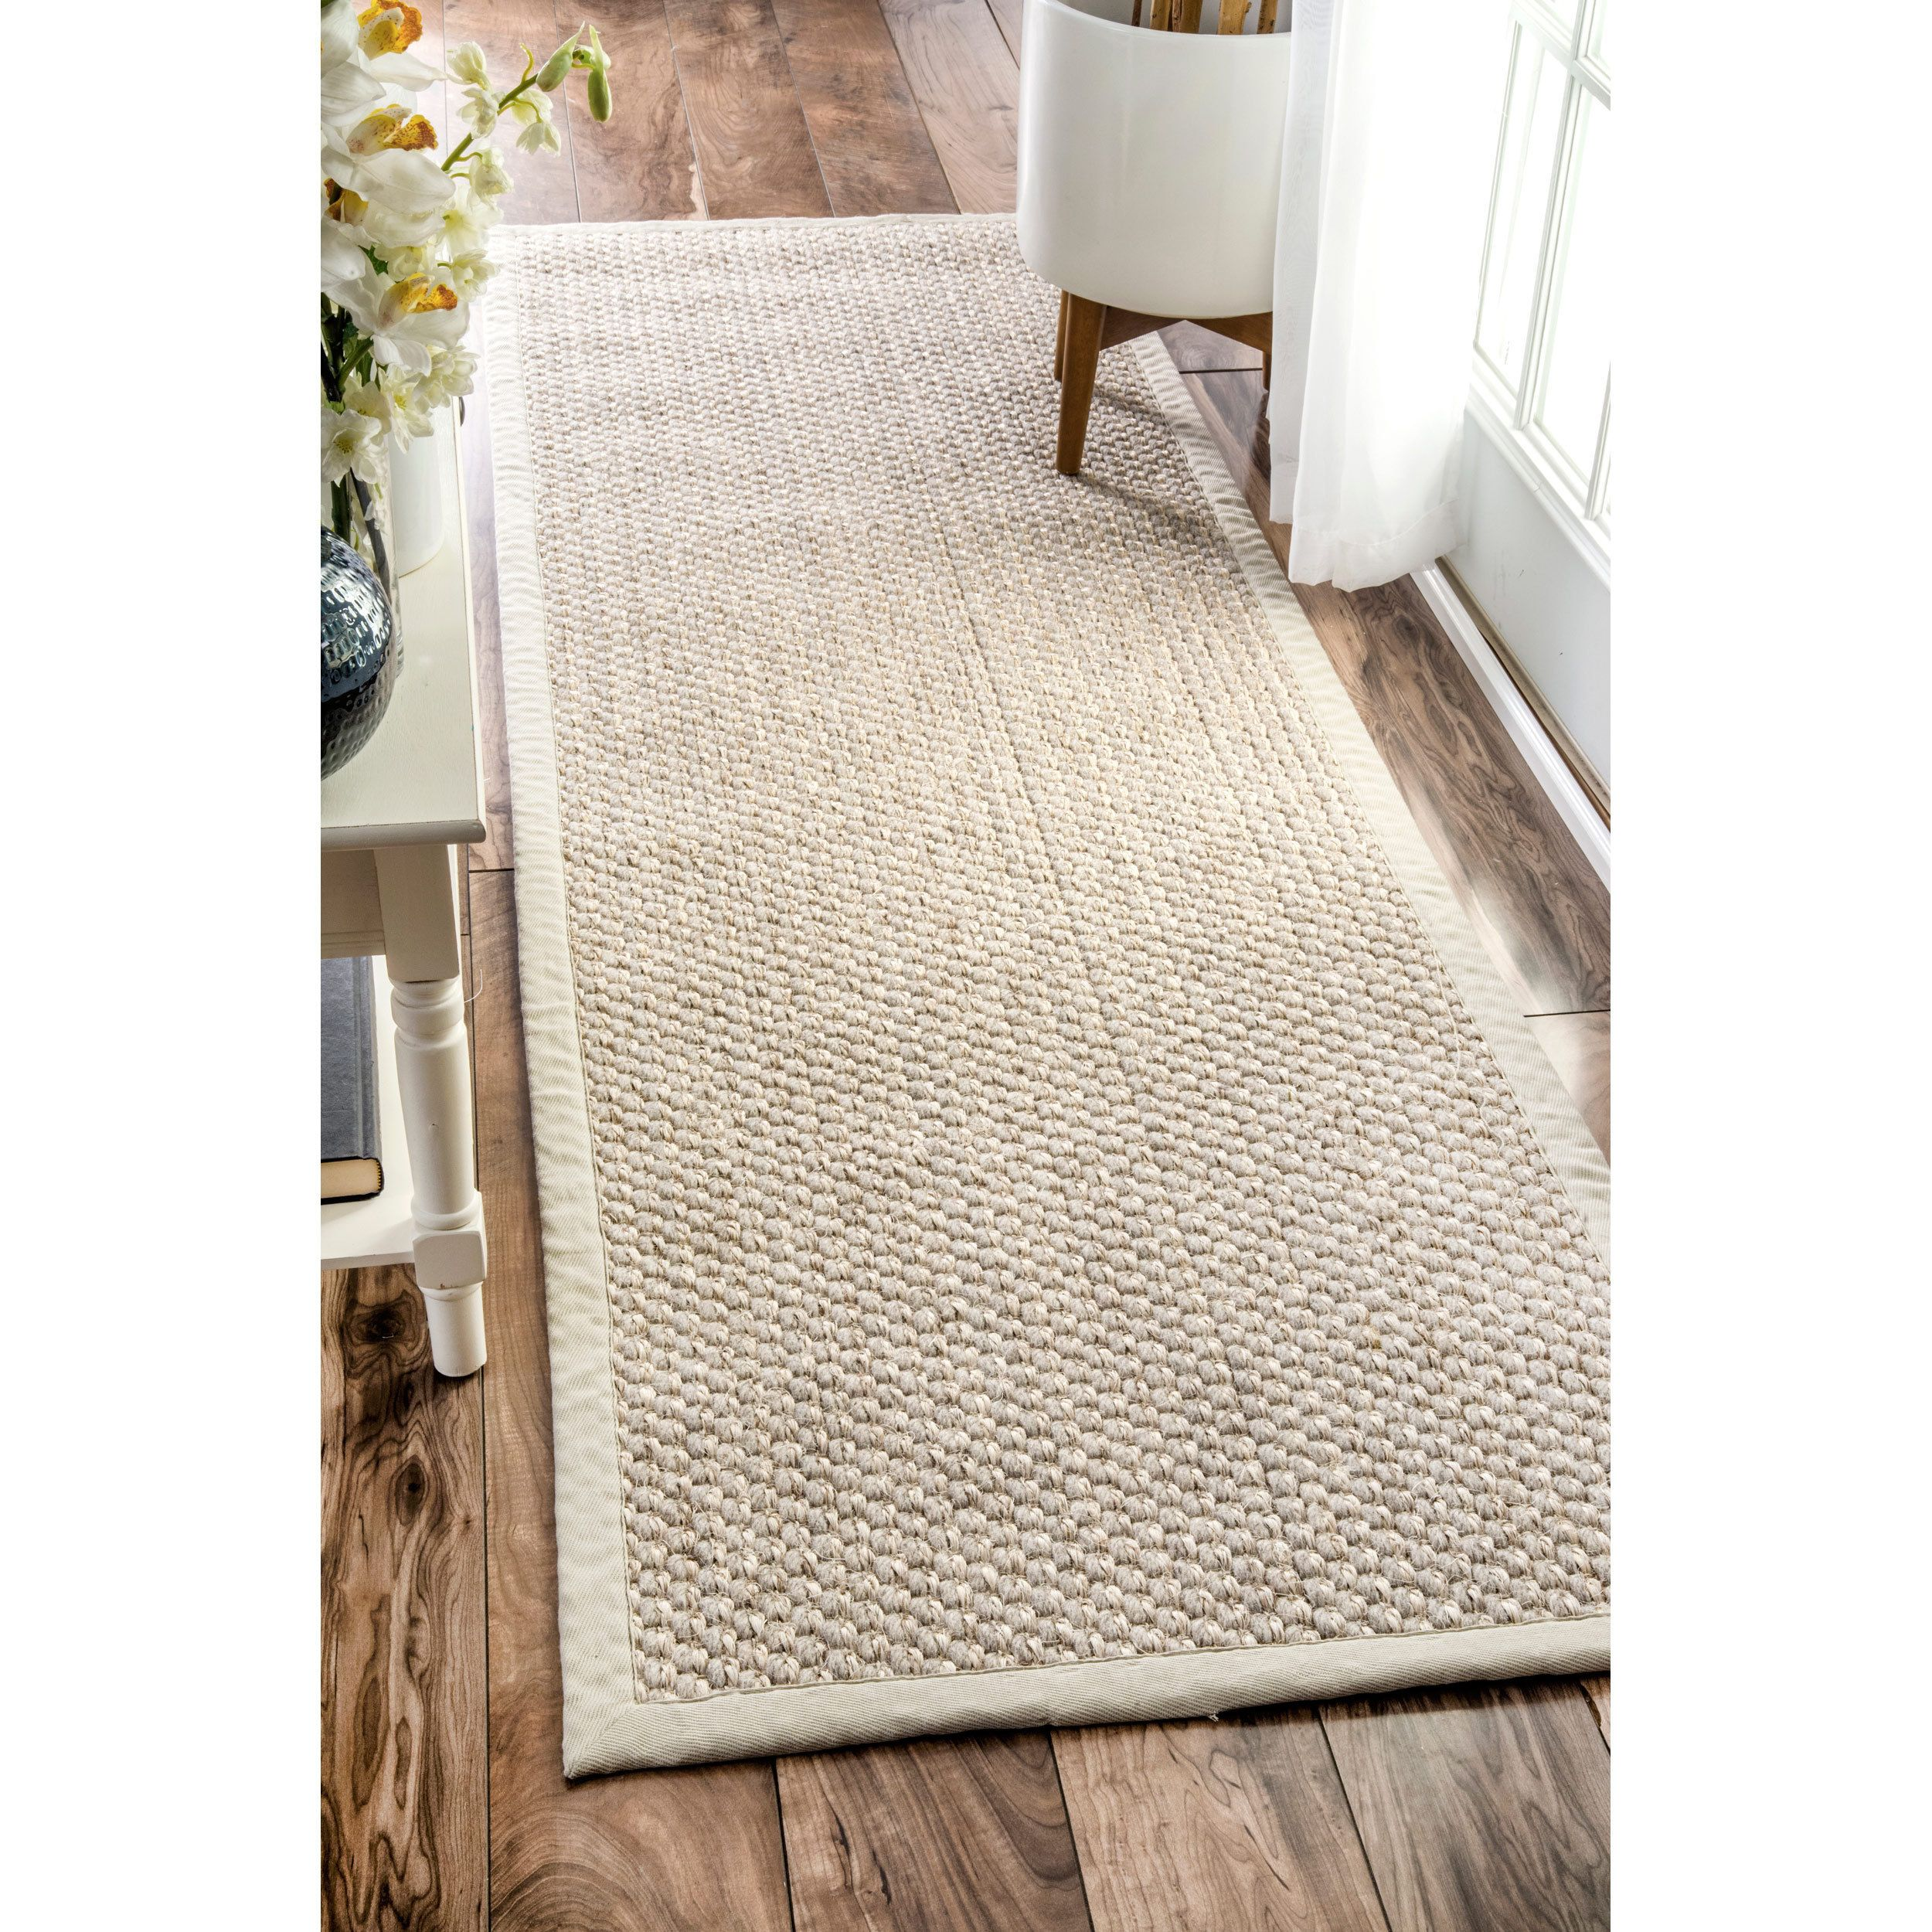 Beige 2 X 8 Runner Rugs Use In Hallways And